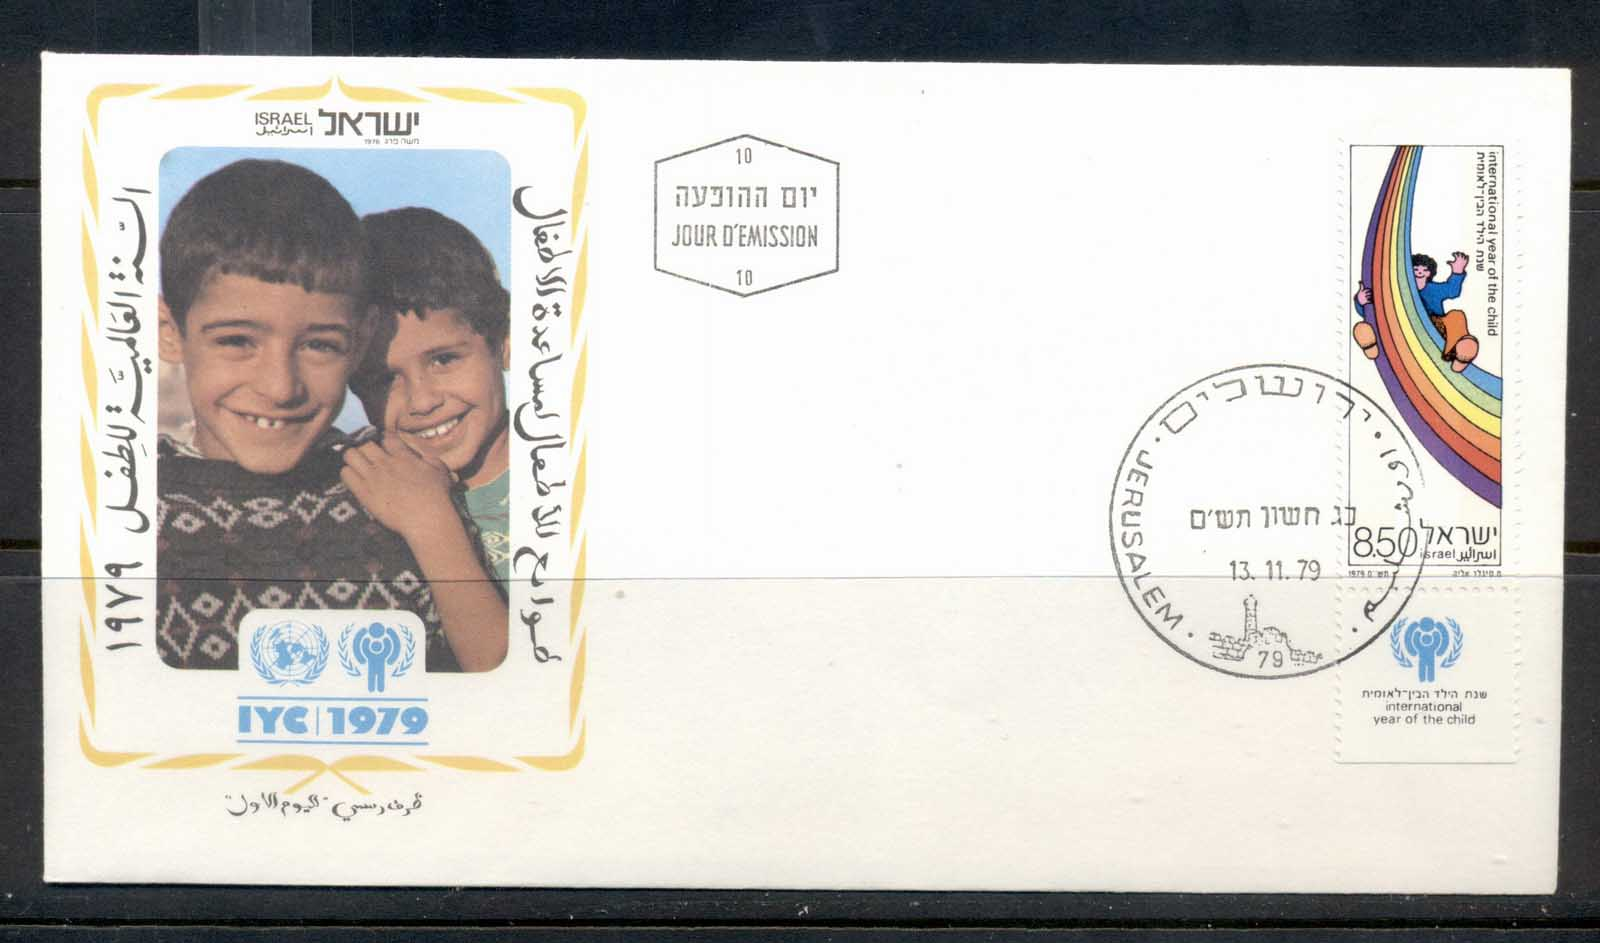 Israel 1979 IYC International year of the Child FDC